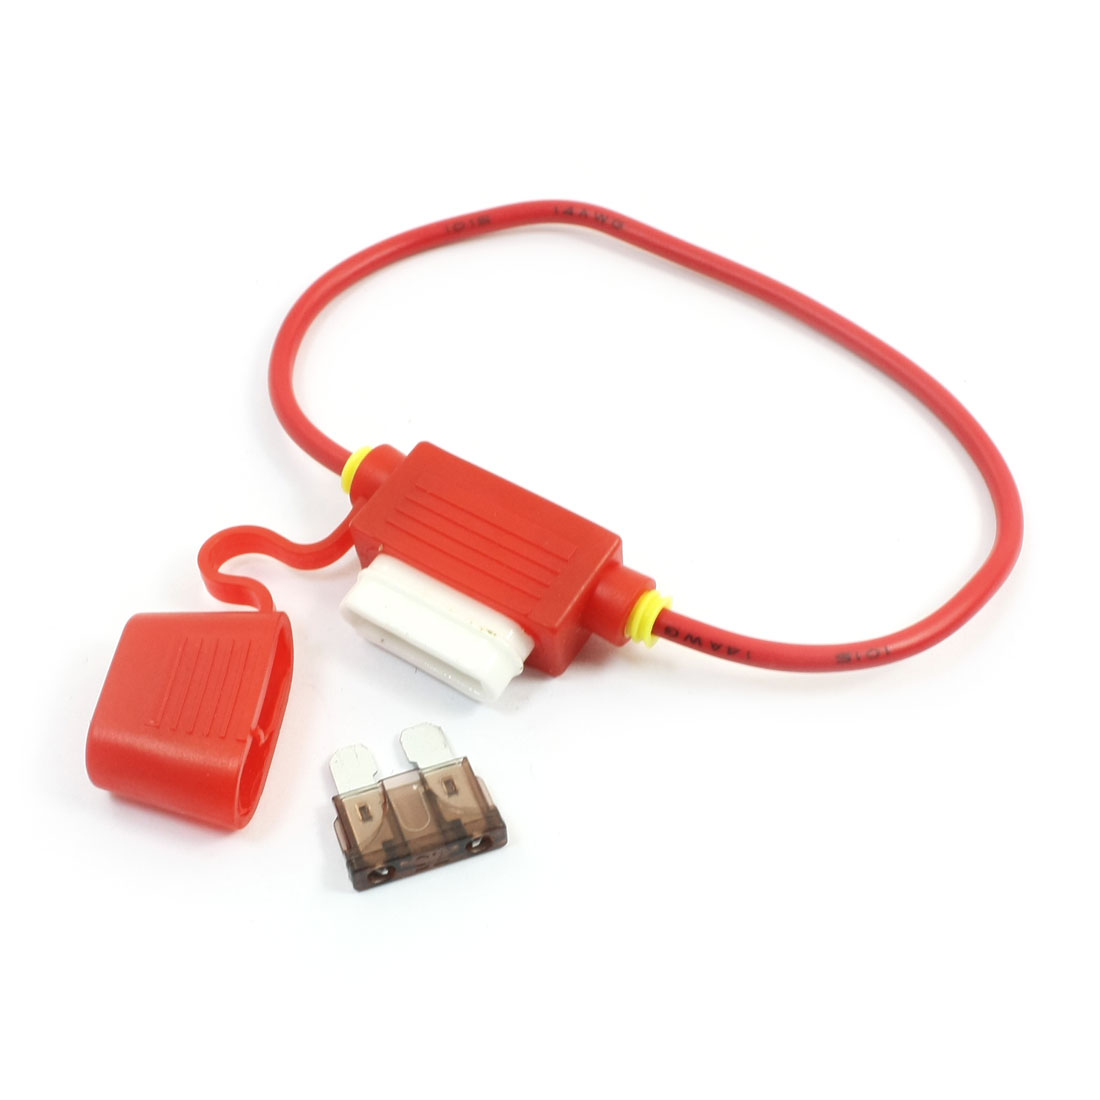 Red Vehicles Car Rubber Blade Fuse Holder Container + 32V 7.5A Fuse